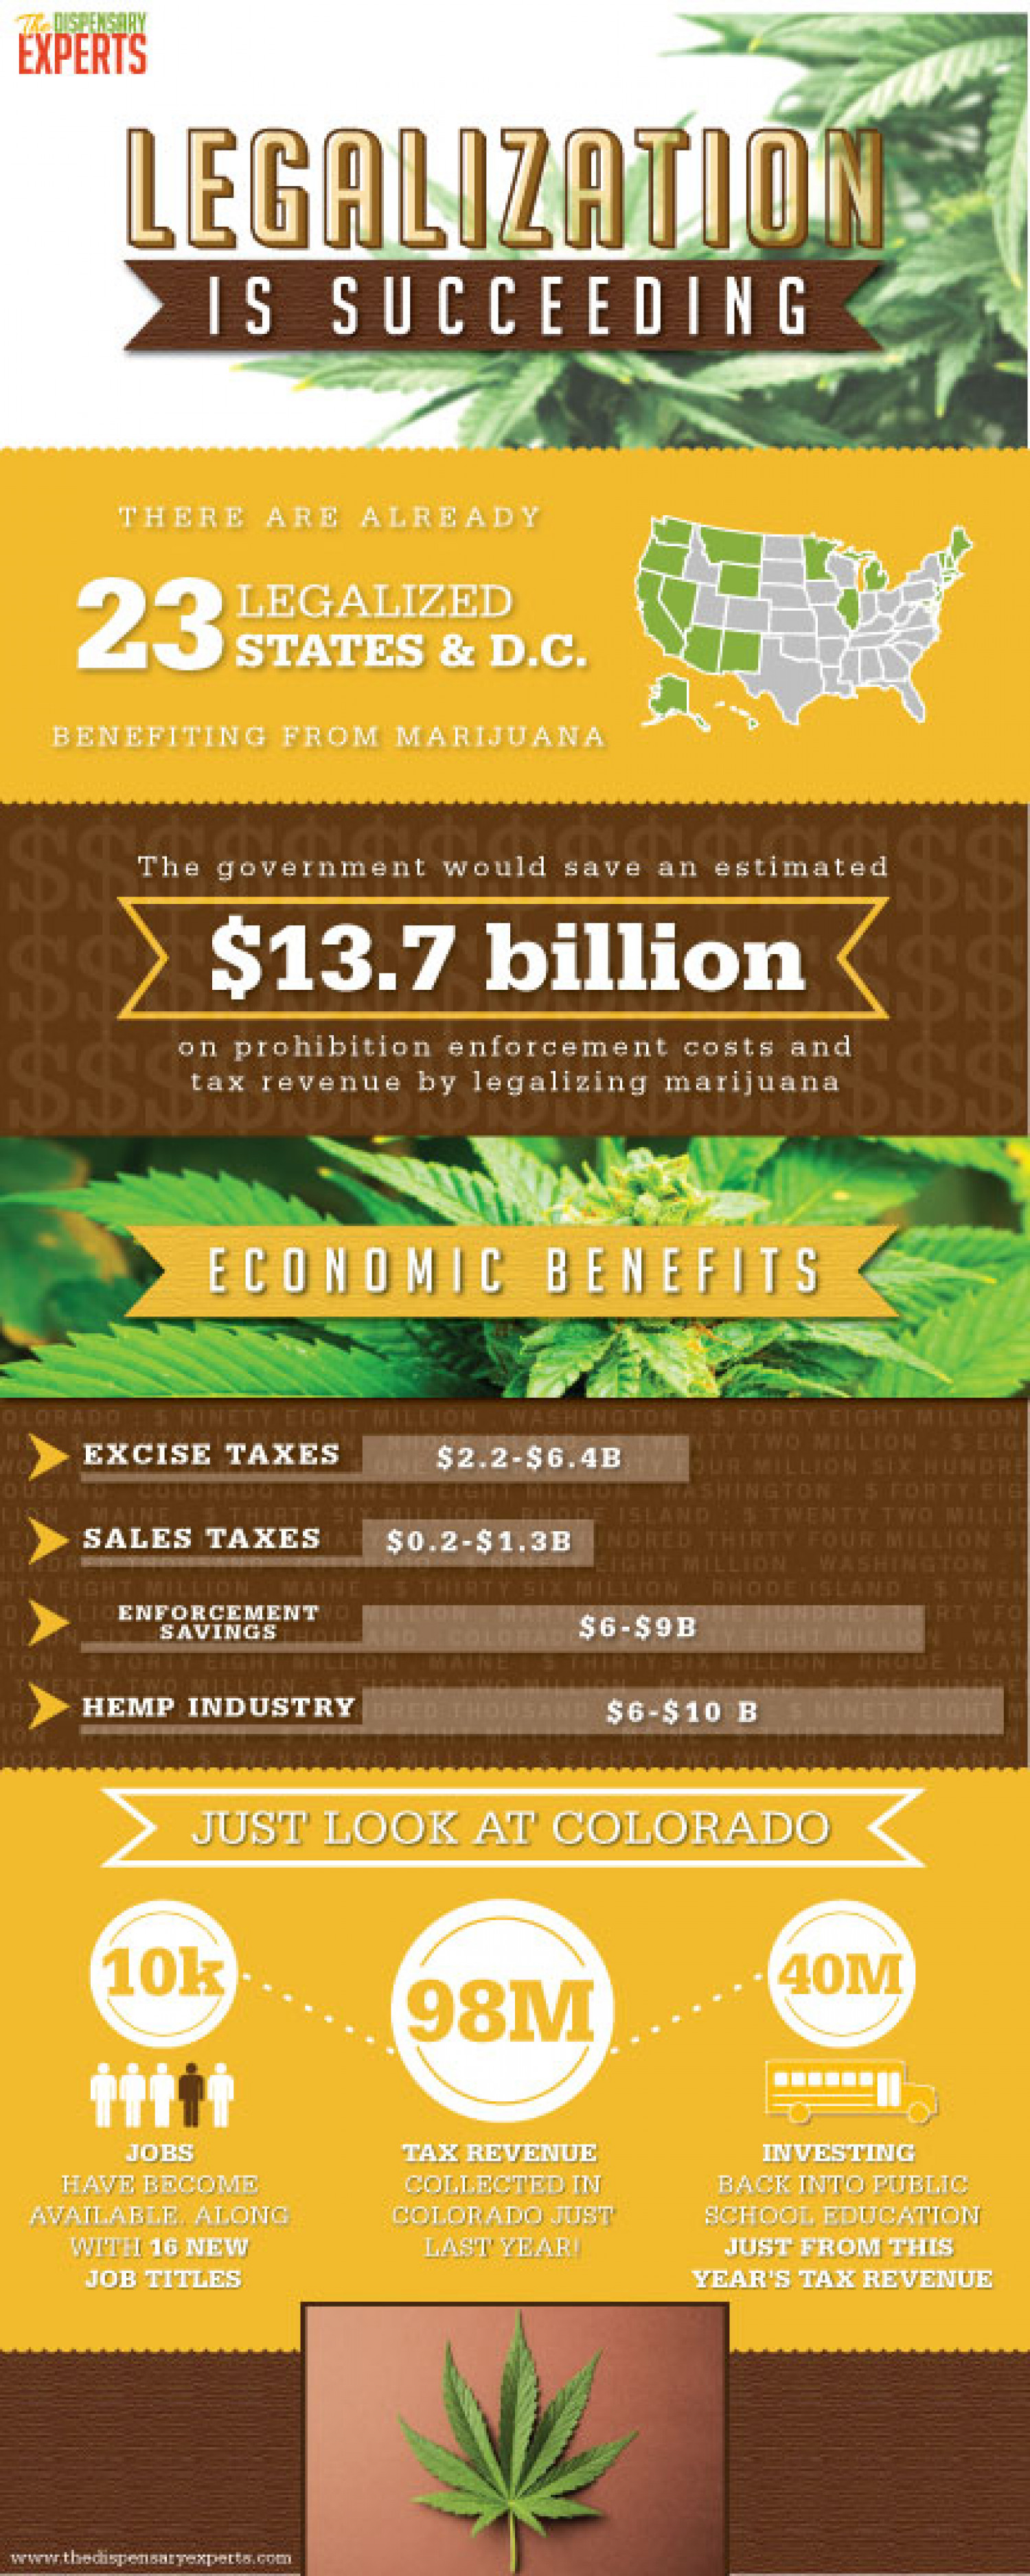 Legalization is Succeeding Infographic